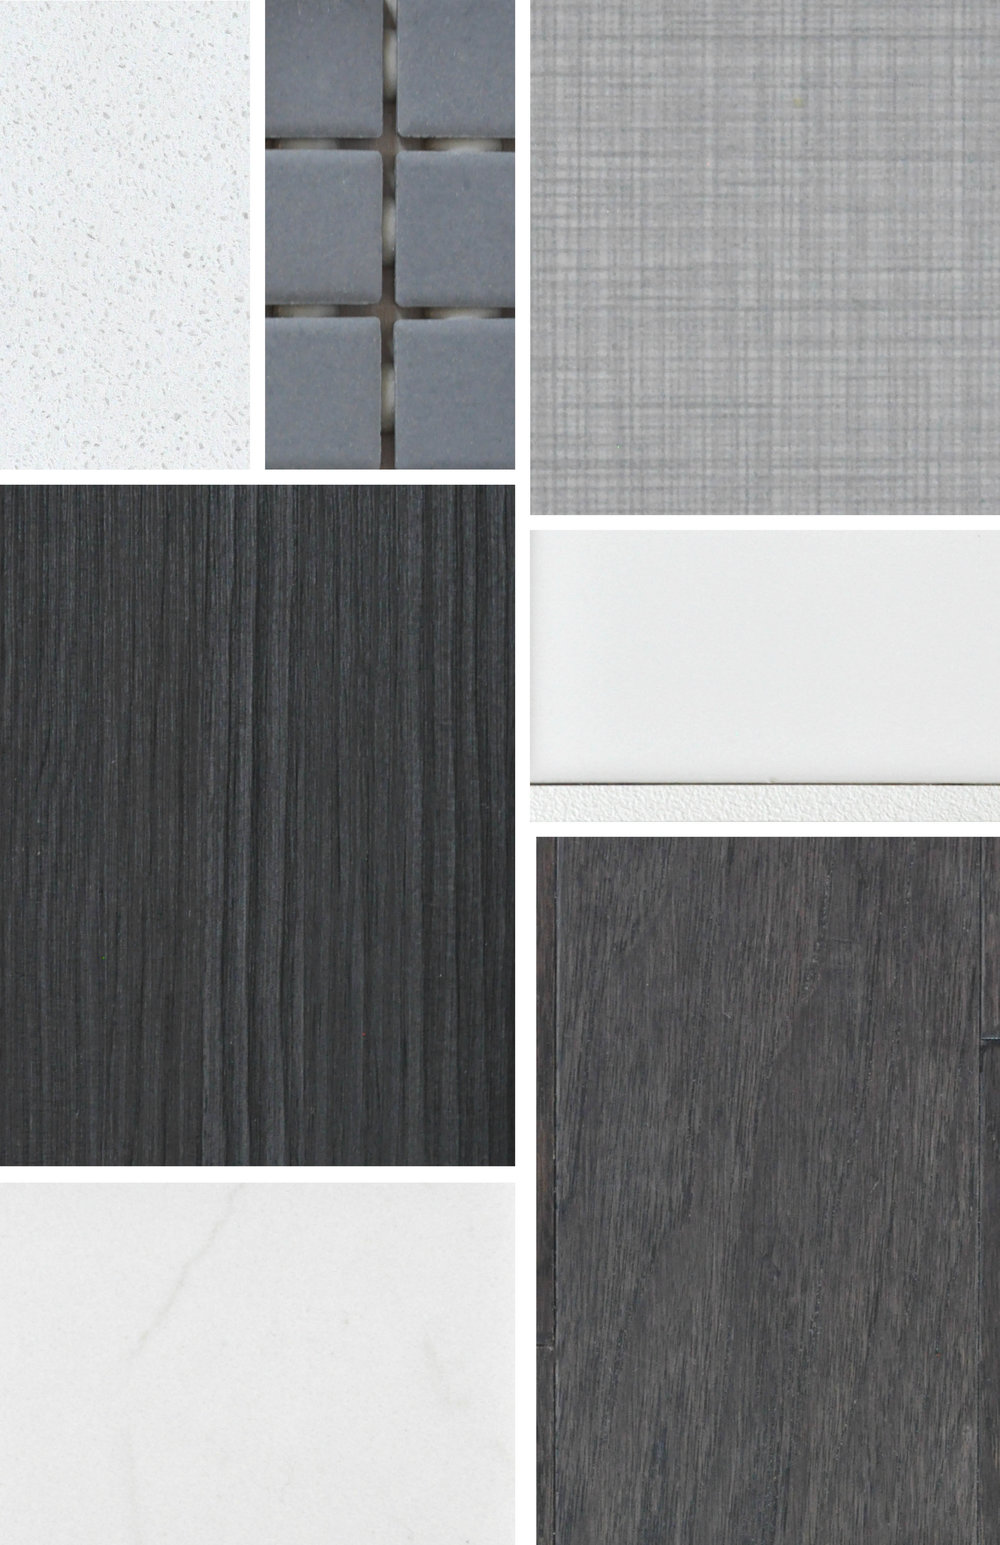 RIO GRANDE - Rich textures and tones abound in the Rio Grande interior palette. Sophisticated finishes create timeless style and understated elegance in every room. Designed for the discerning homebuyer with distinctive taste, this palette exudes simplicity with a modern nod to transitional styling.